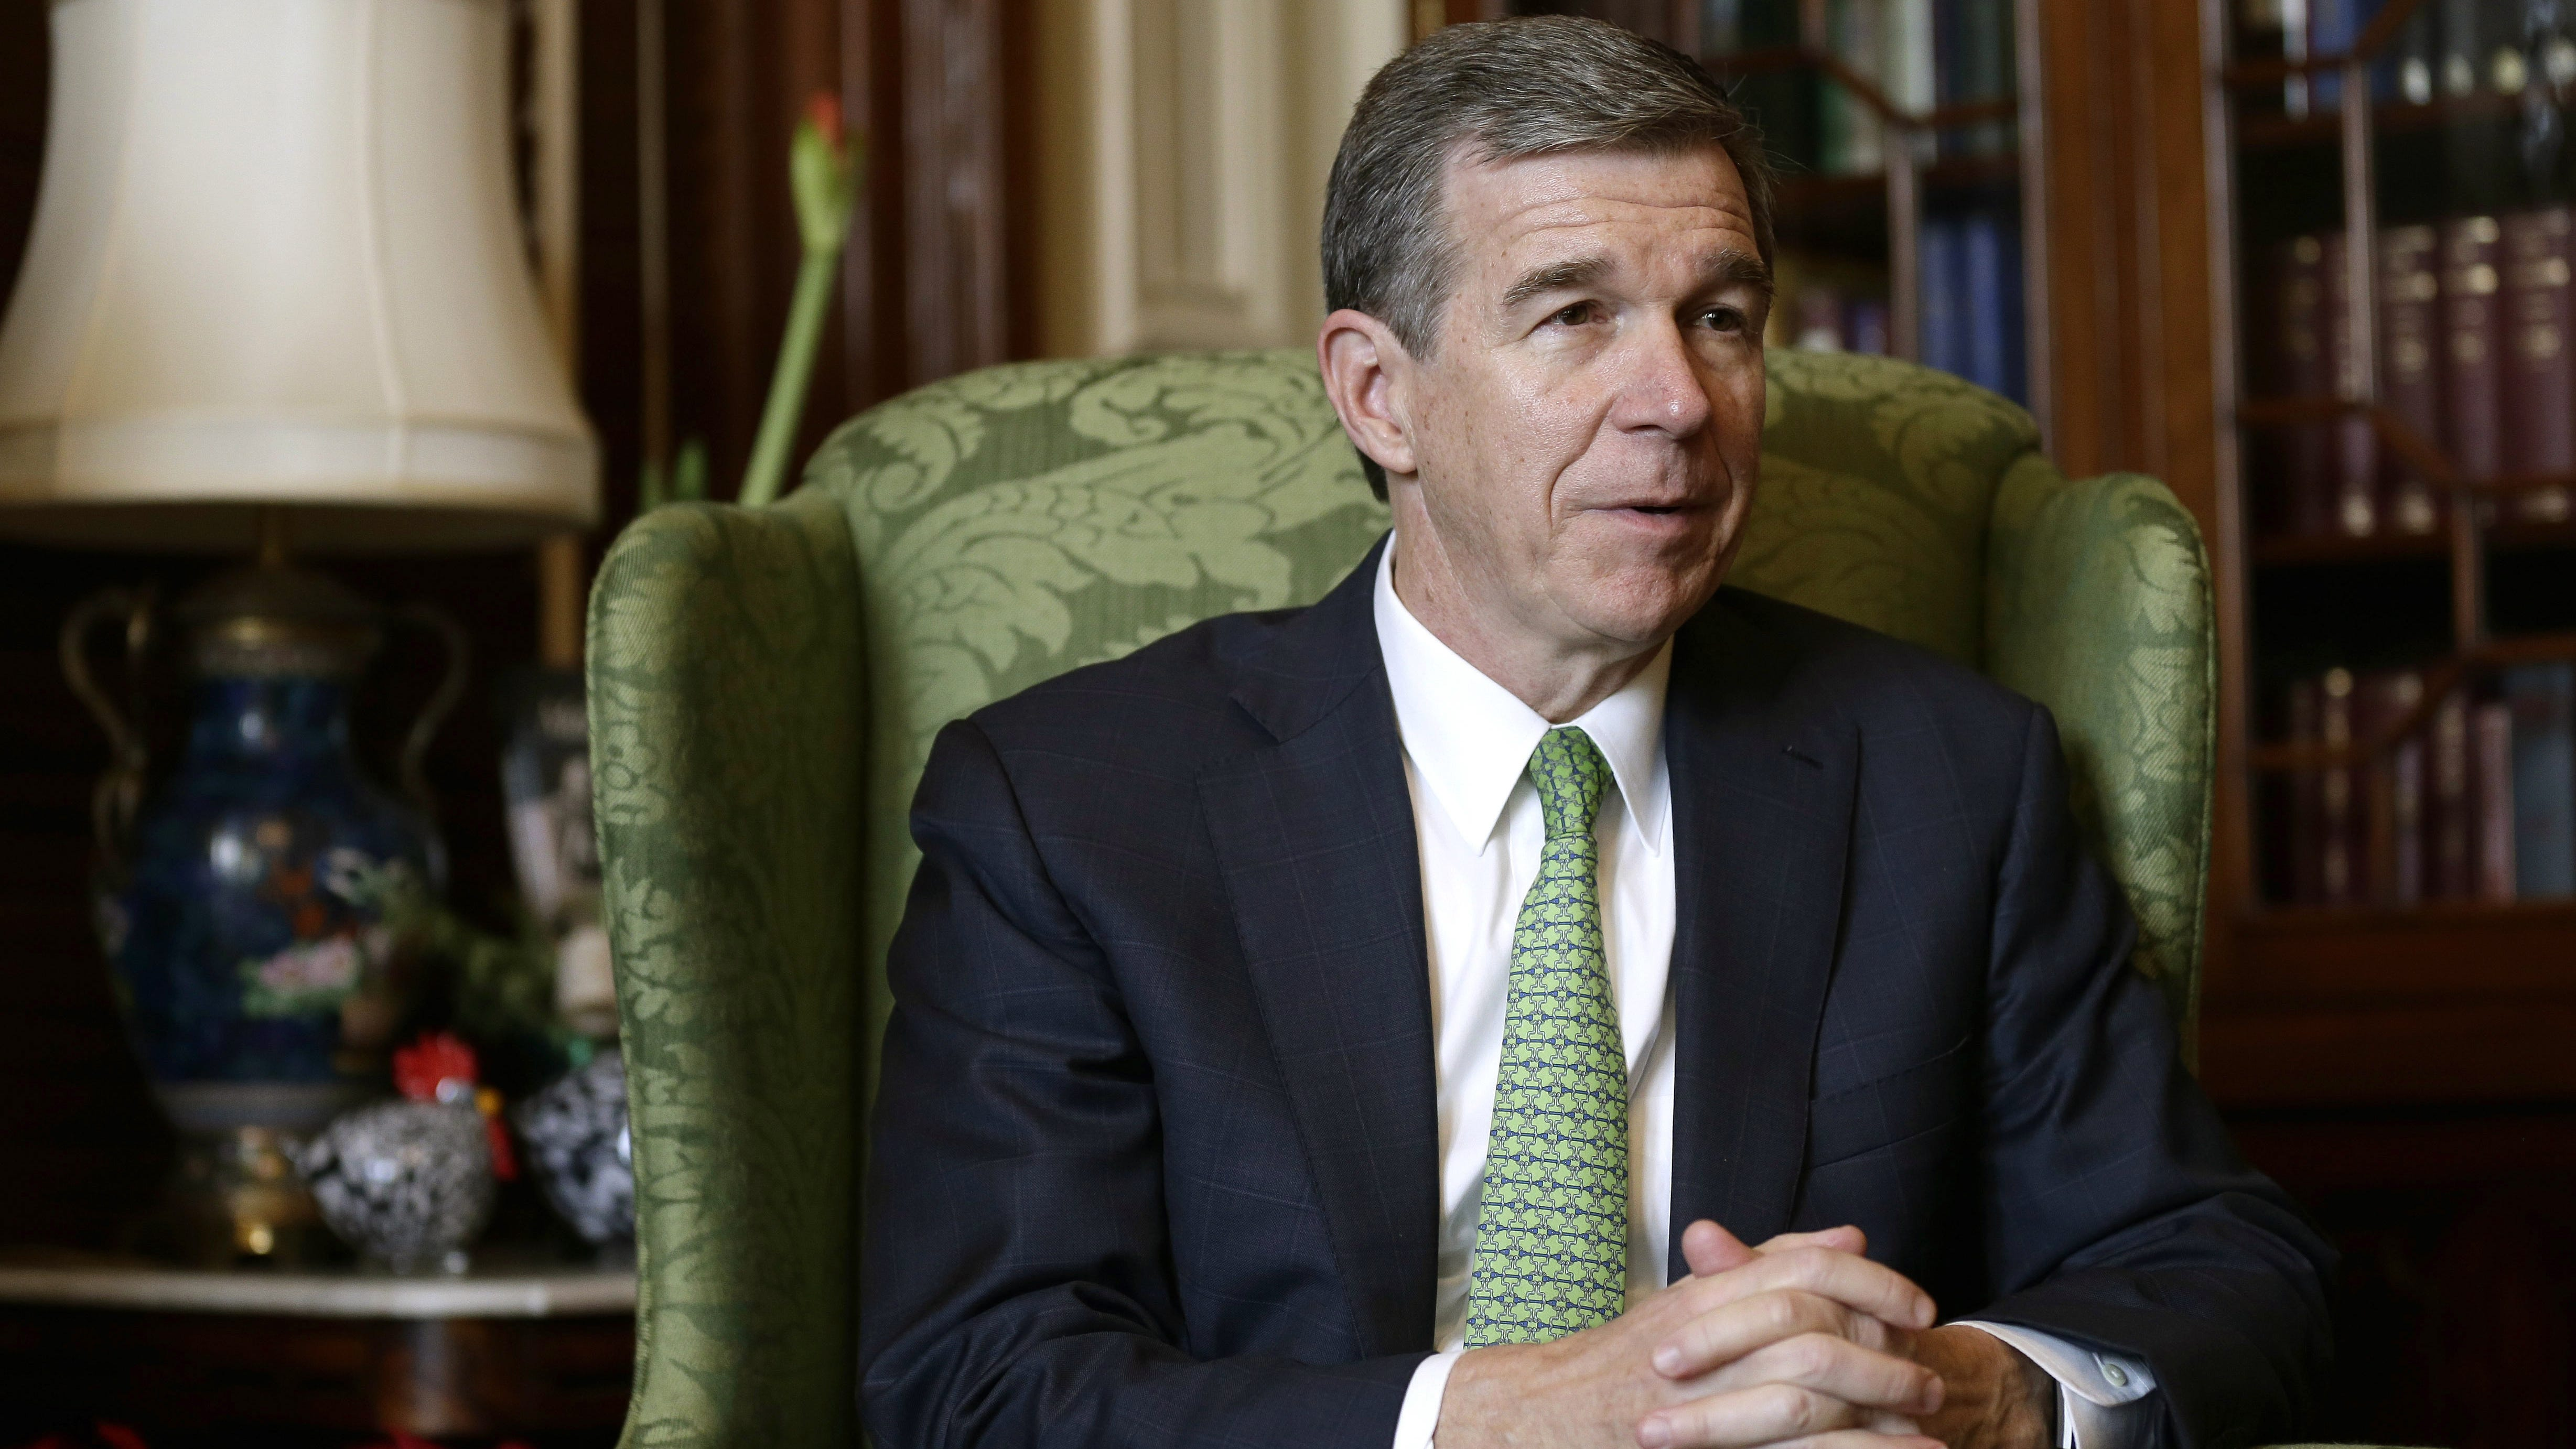 N.C. governor says he'll seek jobless aid